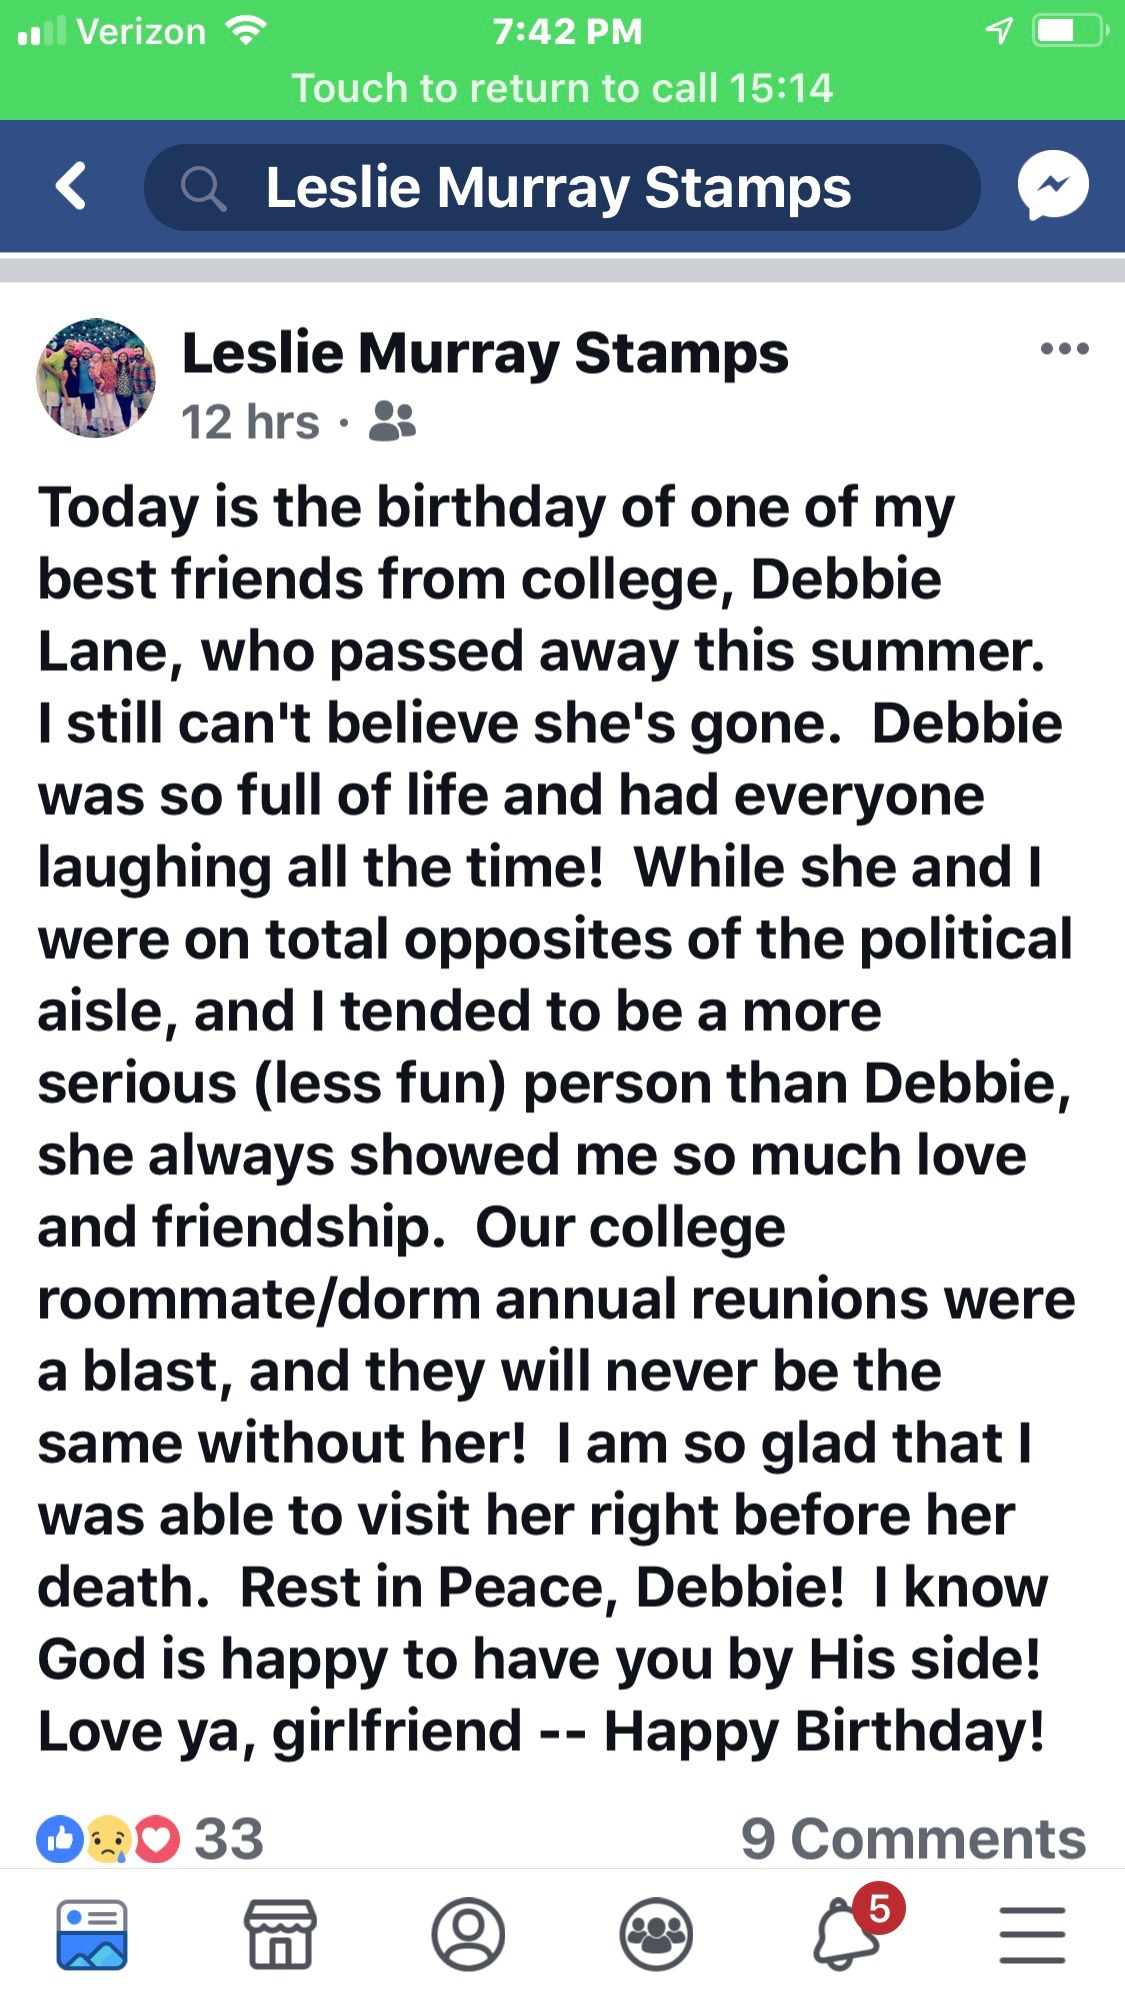 Posted on Facebook by Leslie Stamps